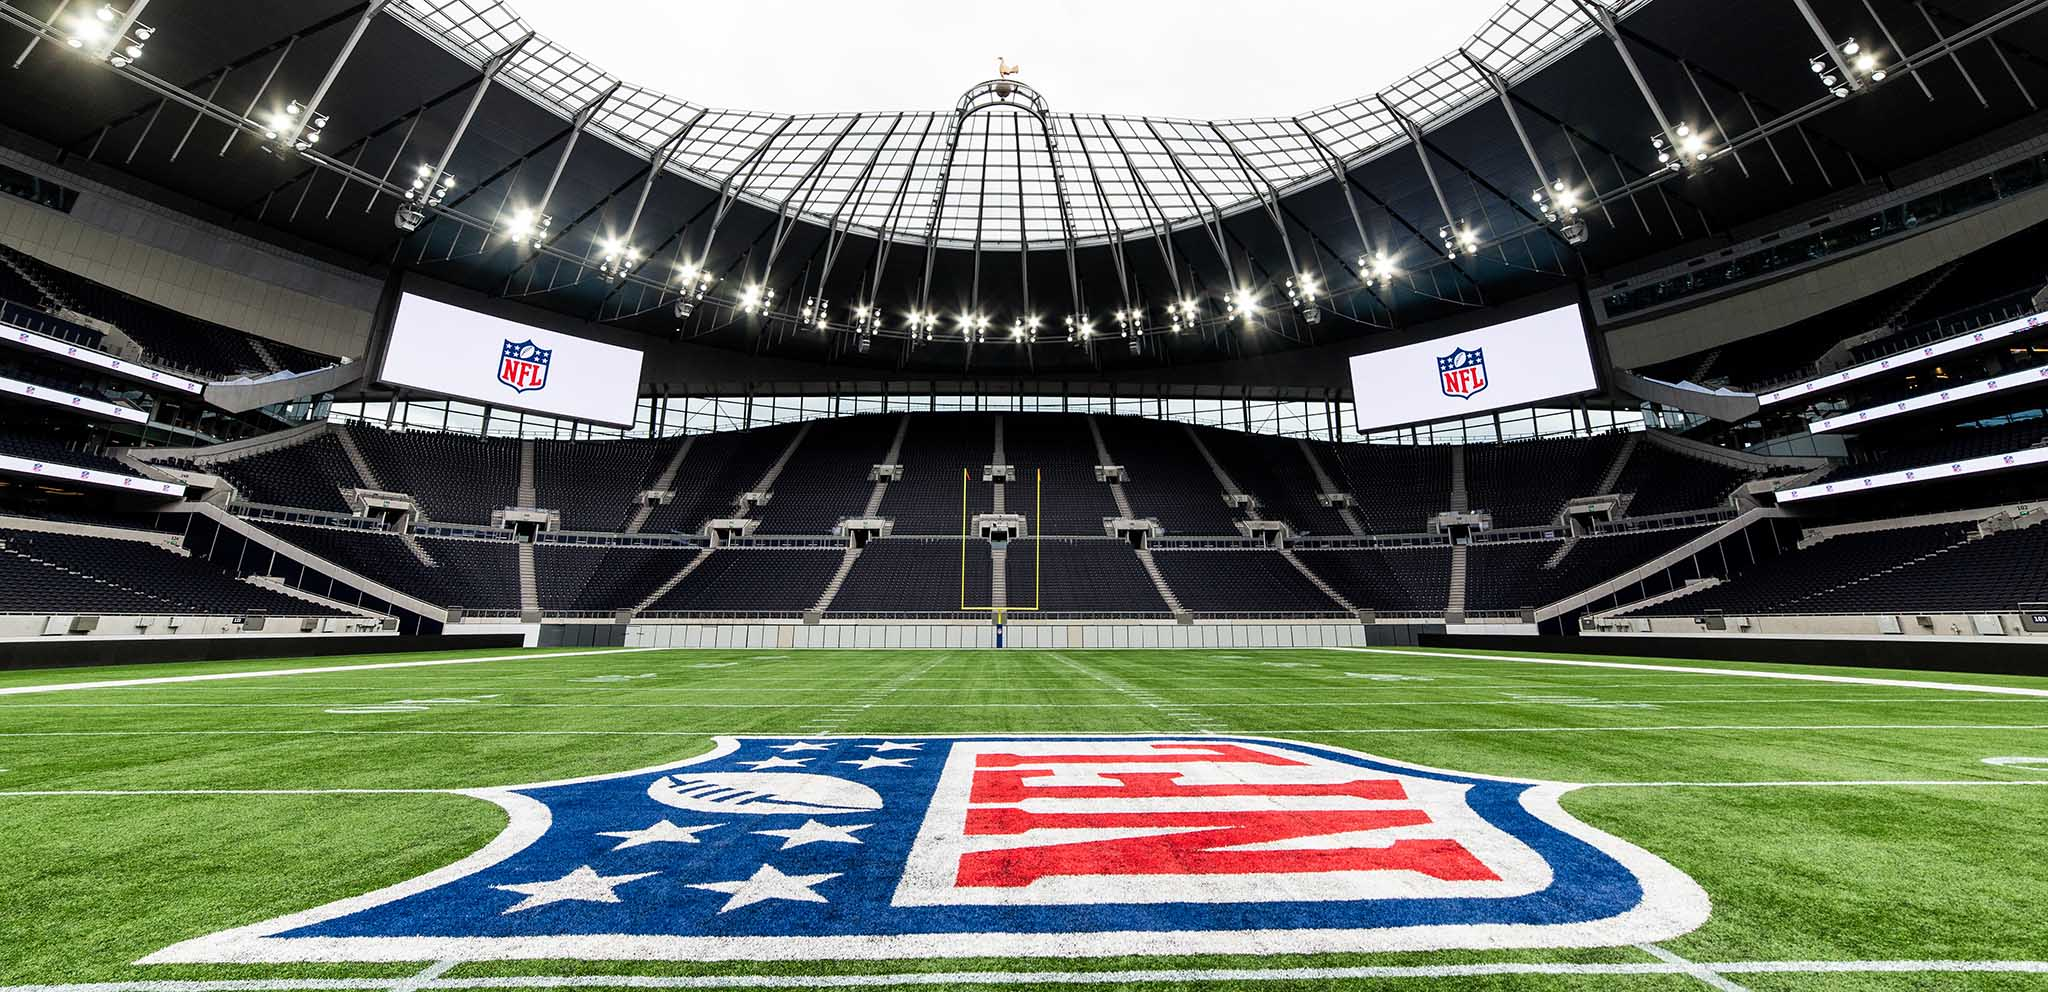 Nfl Premium Tickets London Tottenham Hotspur